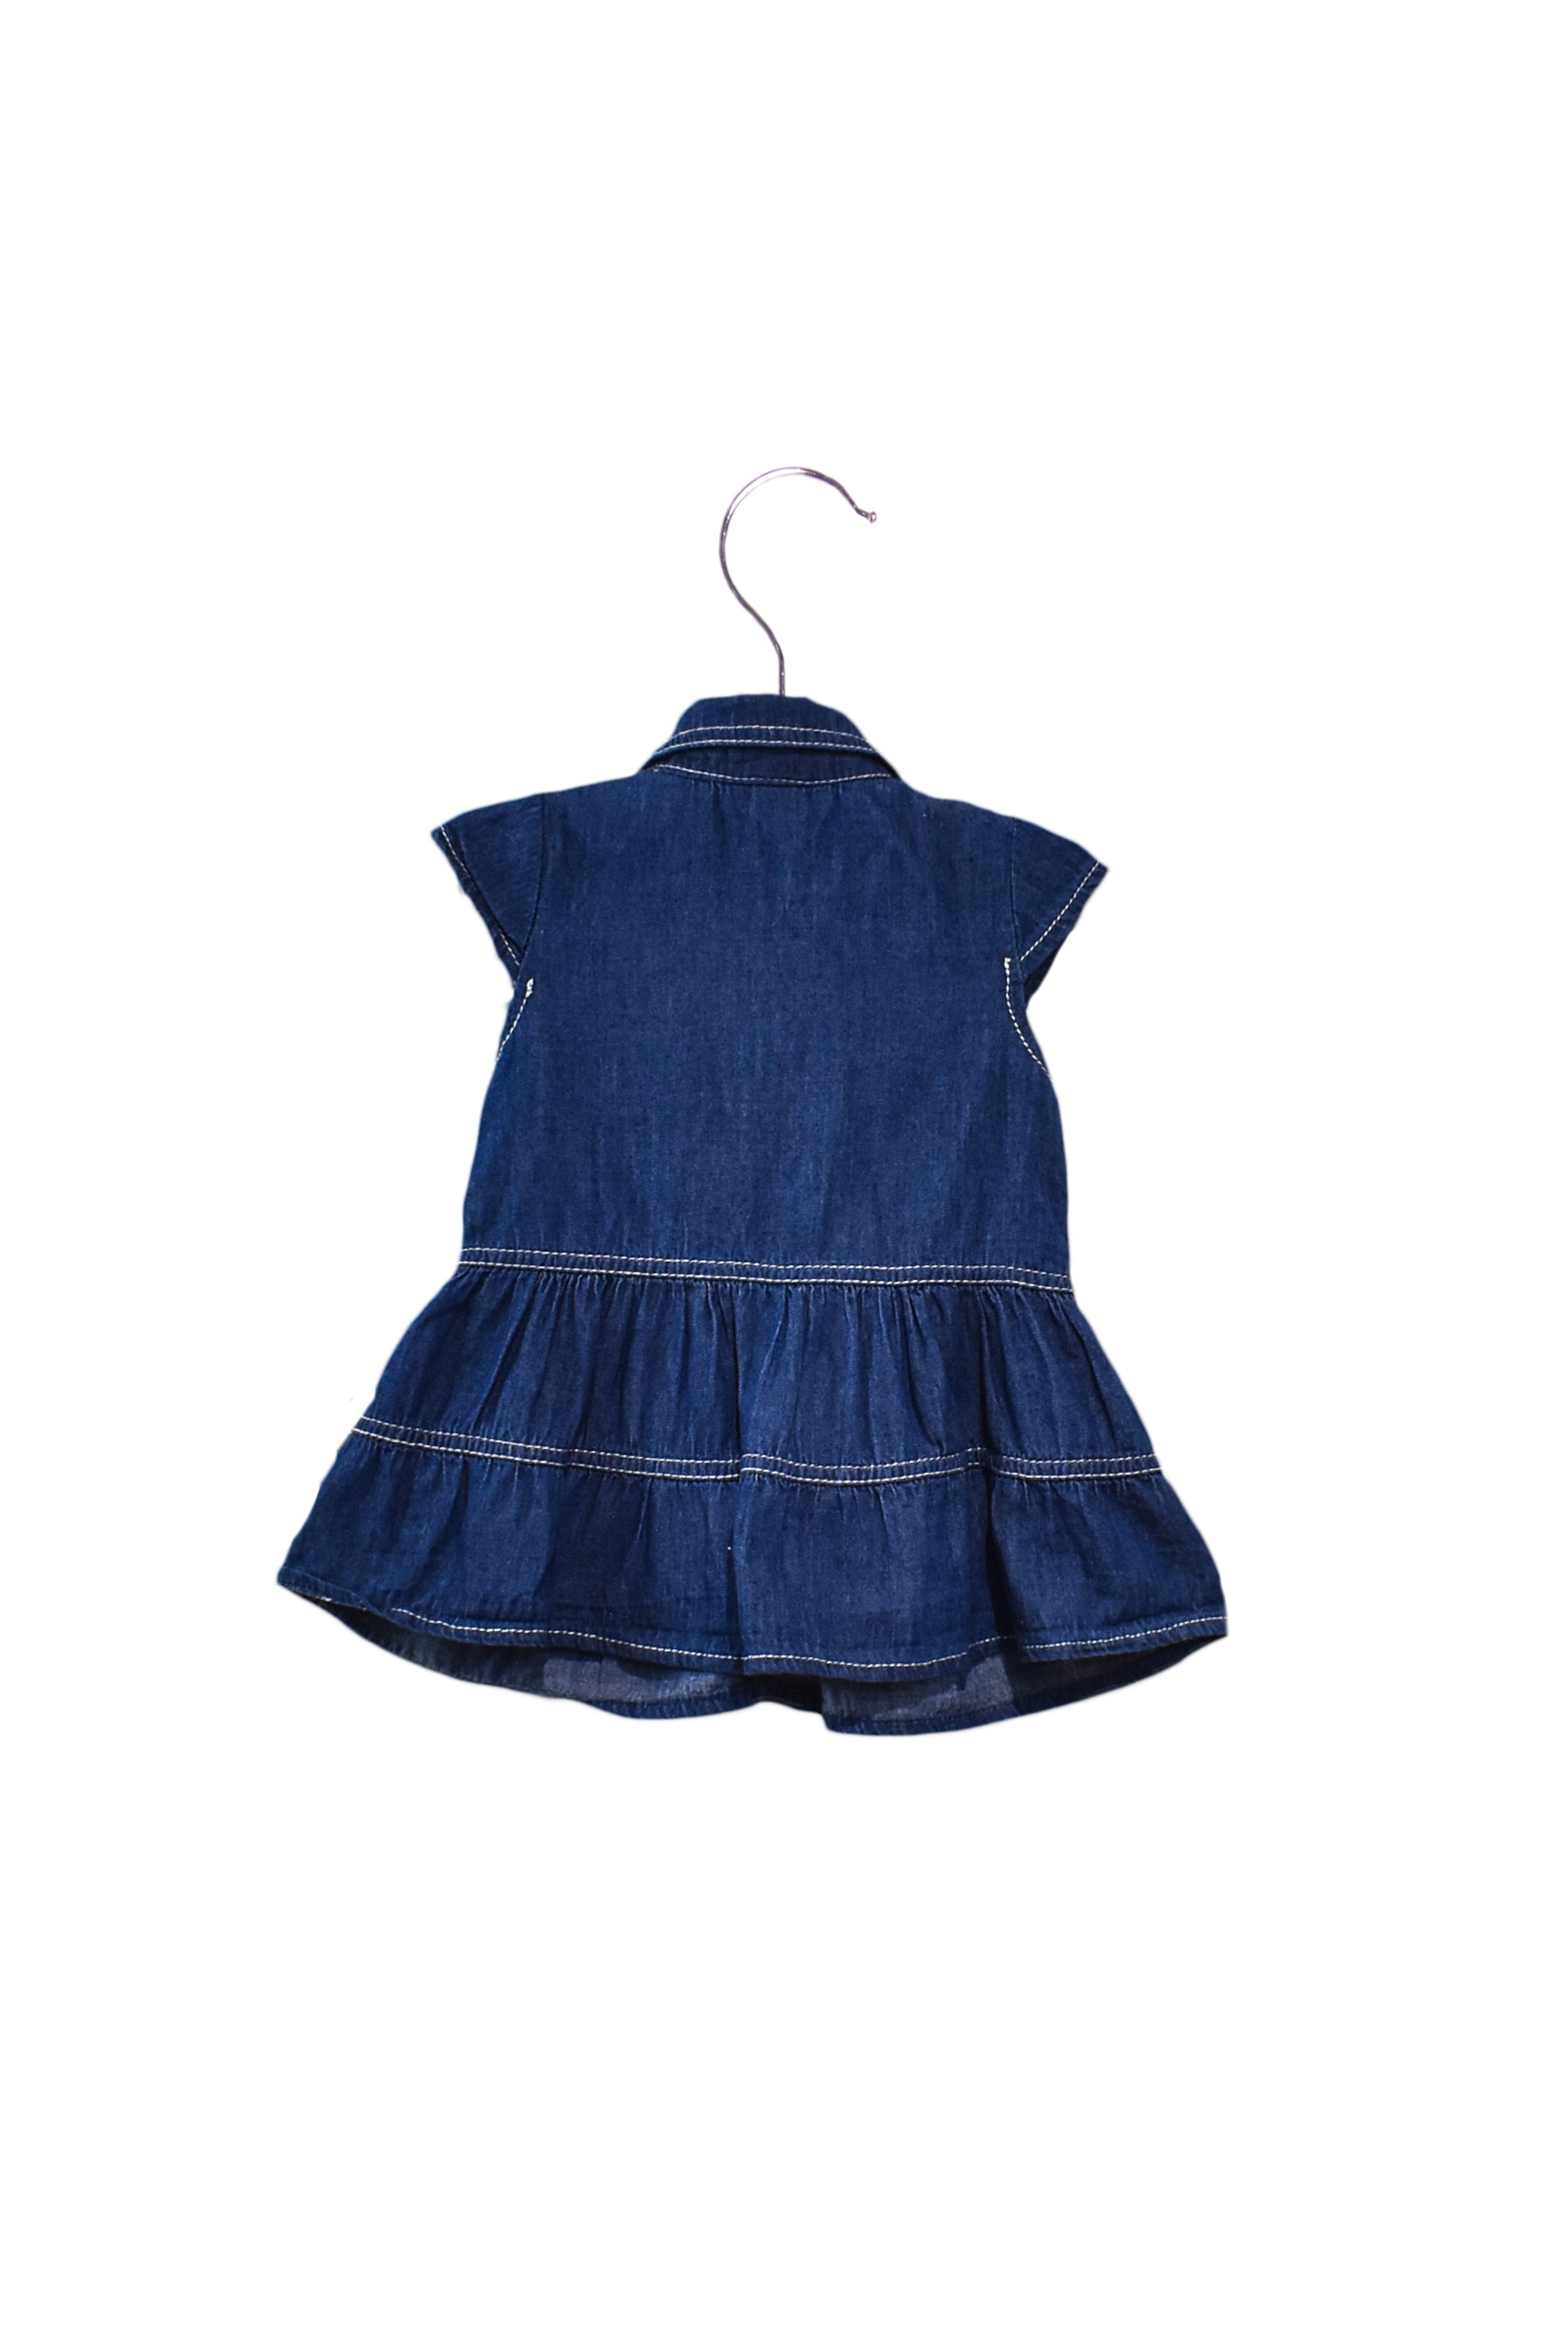 10028035 Tommy Hilfiger Baby~Dress 6-9M at Retykle